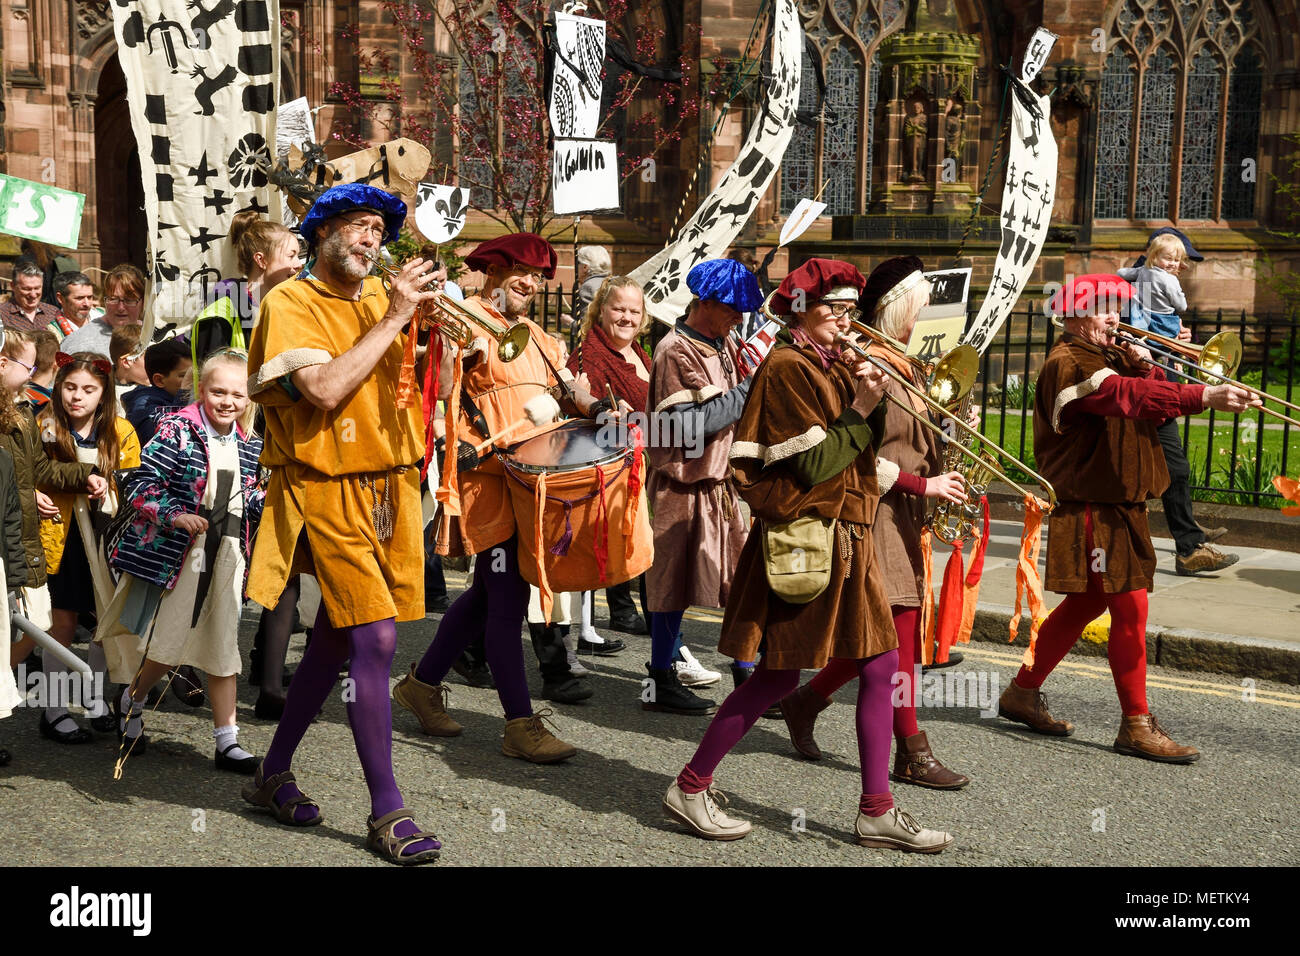 Chester, UK. 23rd April 2018. Musicians lead the St George's Day parade through Chester city centre. The parade includes street performance, theatre and music with local school children performing many supporting roles. Credit: Andrew Paterson/Alamy Live News - Stock Image